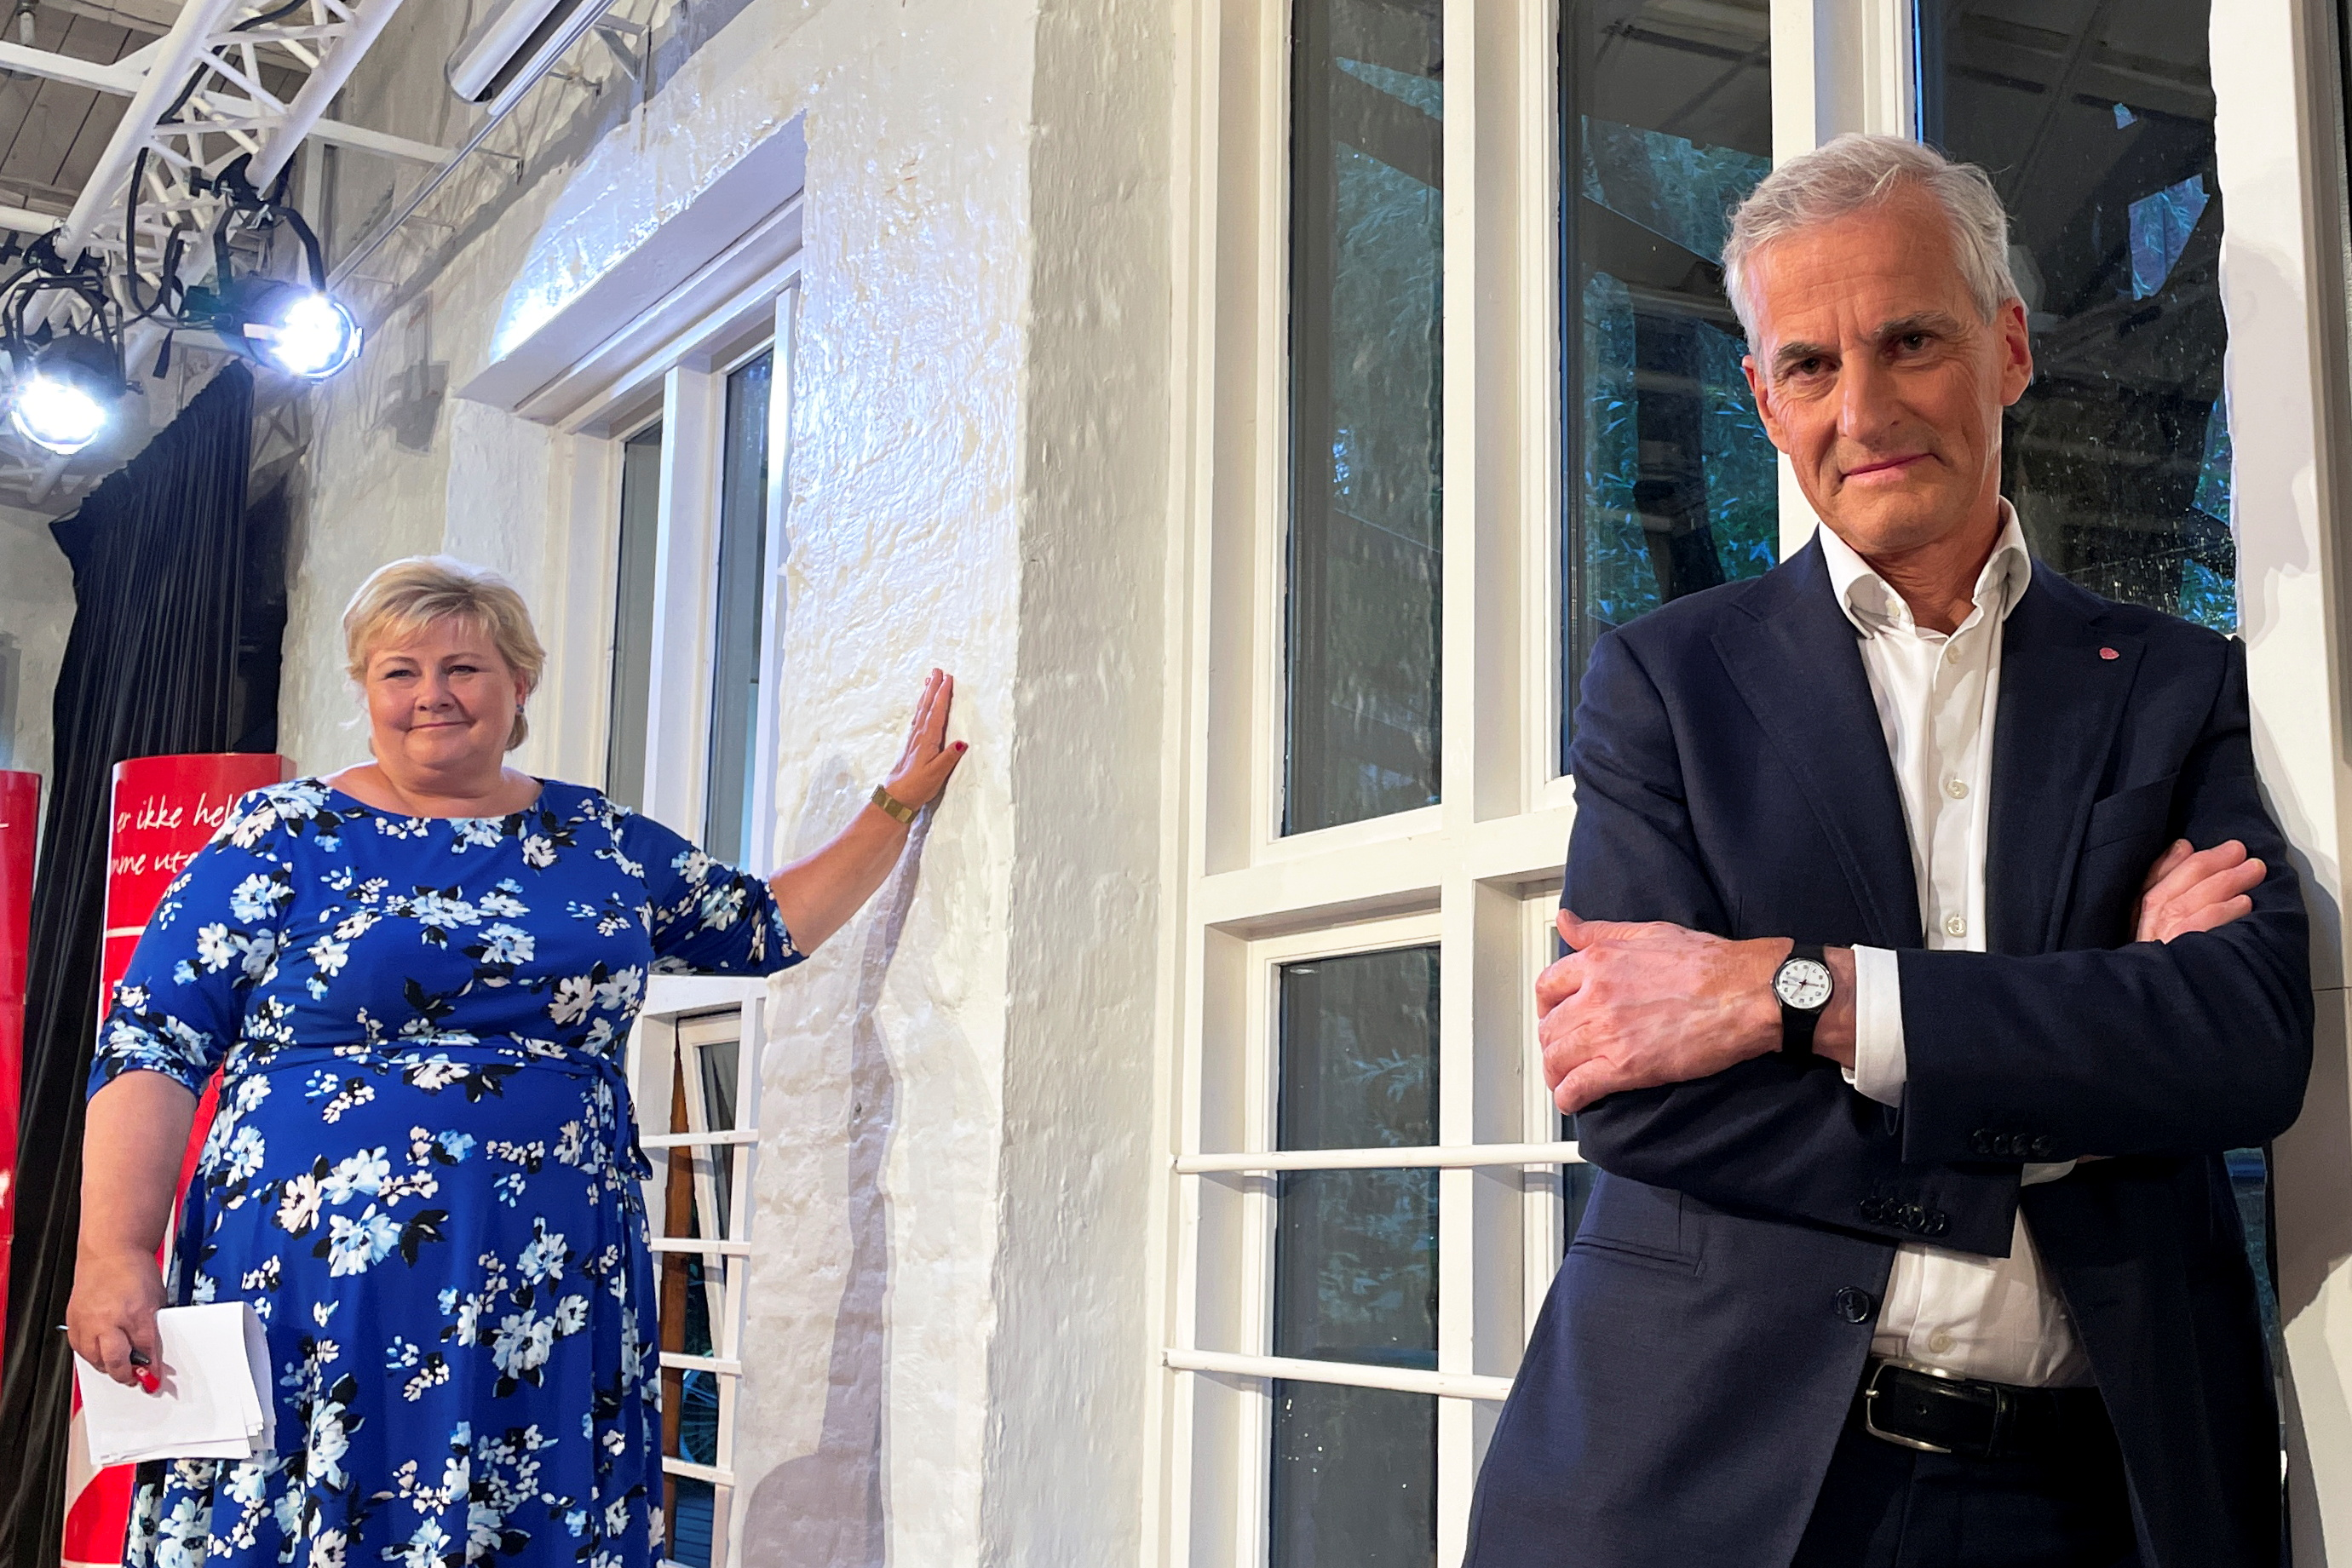 Candidates for Norway's prime minister Jonas Gahr Stoere from Labour Party and Erna Solberg from the Conservatives attend a debate in central Oslo, Norway August 9, 2021. Picture taken August 9, 2021. REUTERS/Gwladys Fouche